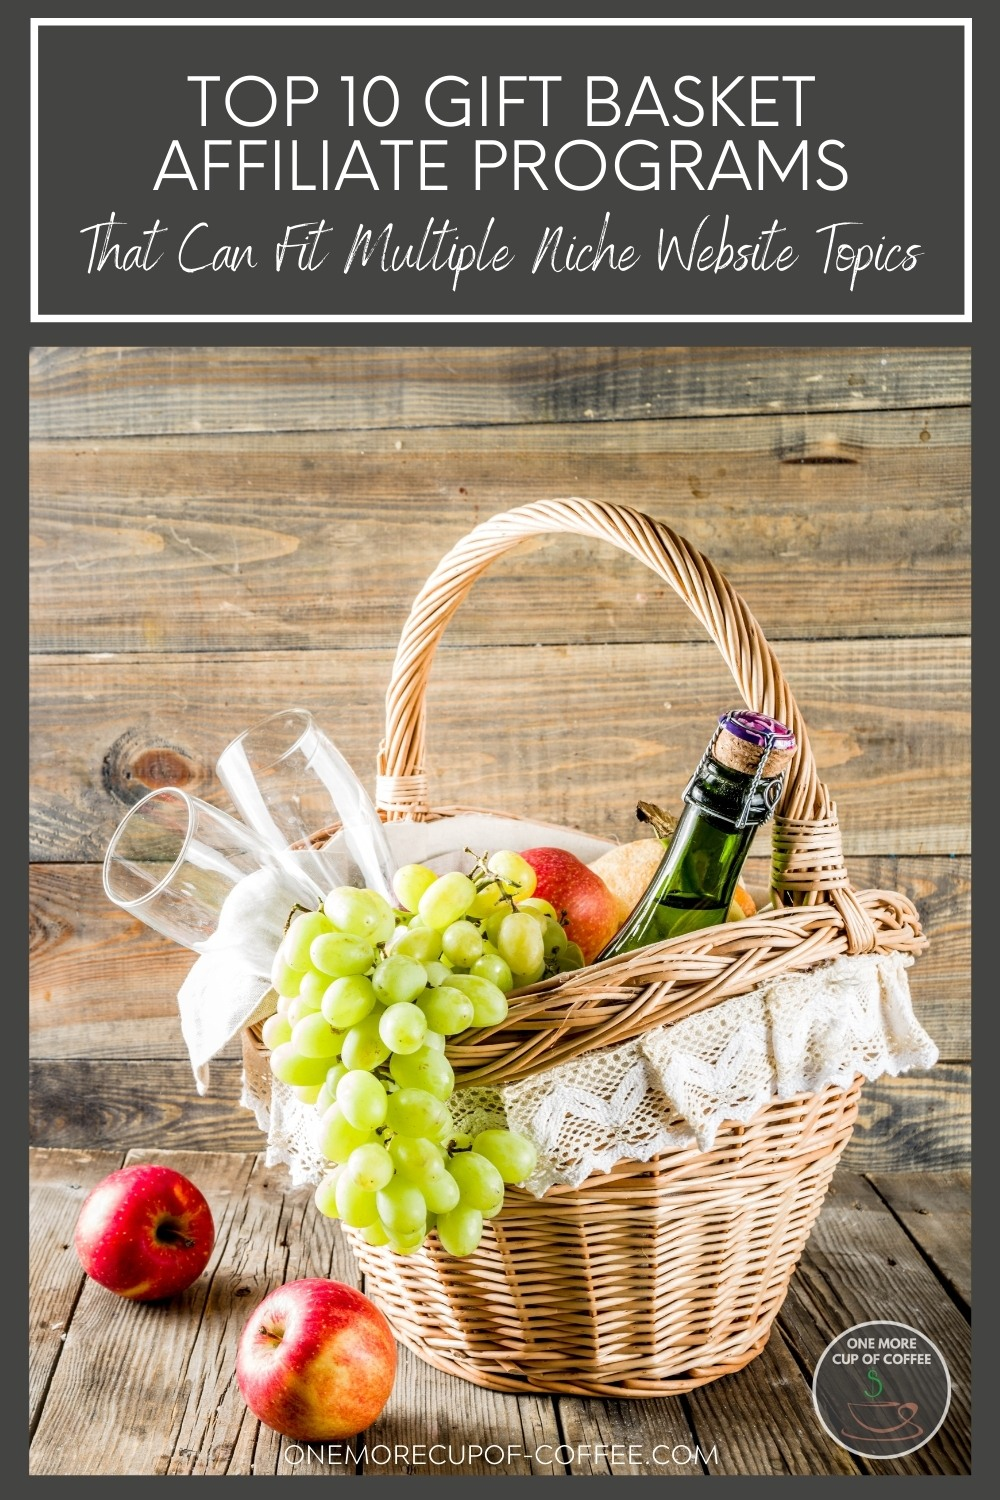 """gift basket with wine, wine bottles, green grapes, and a couple of red apples beside it; with text overlay at the top """"Top 10 Gift Basket Affiliate Programs That Can Fit Multiple Niche Website Topics"""""""